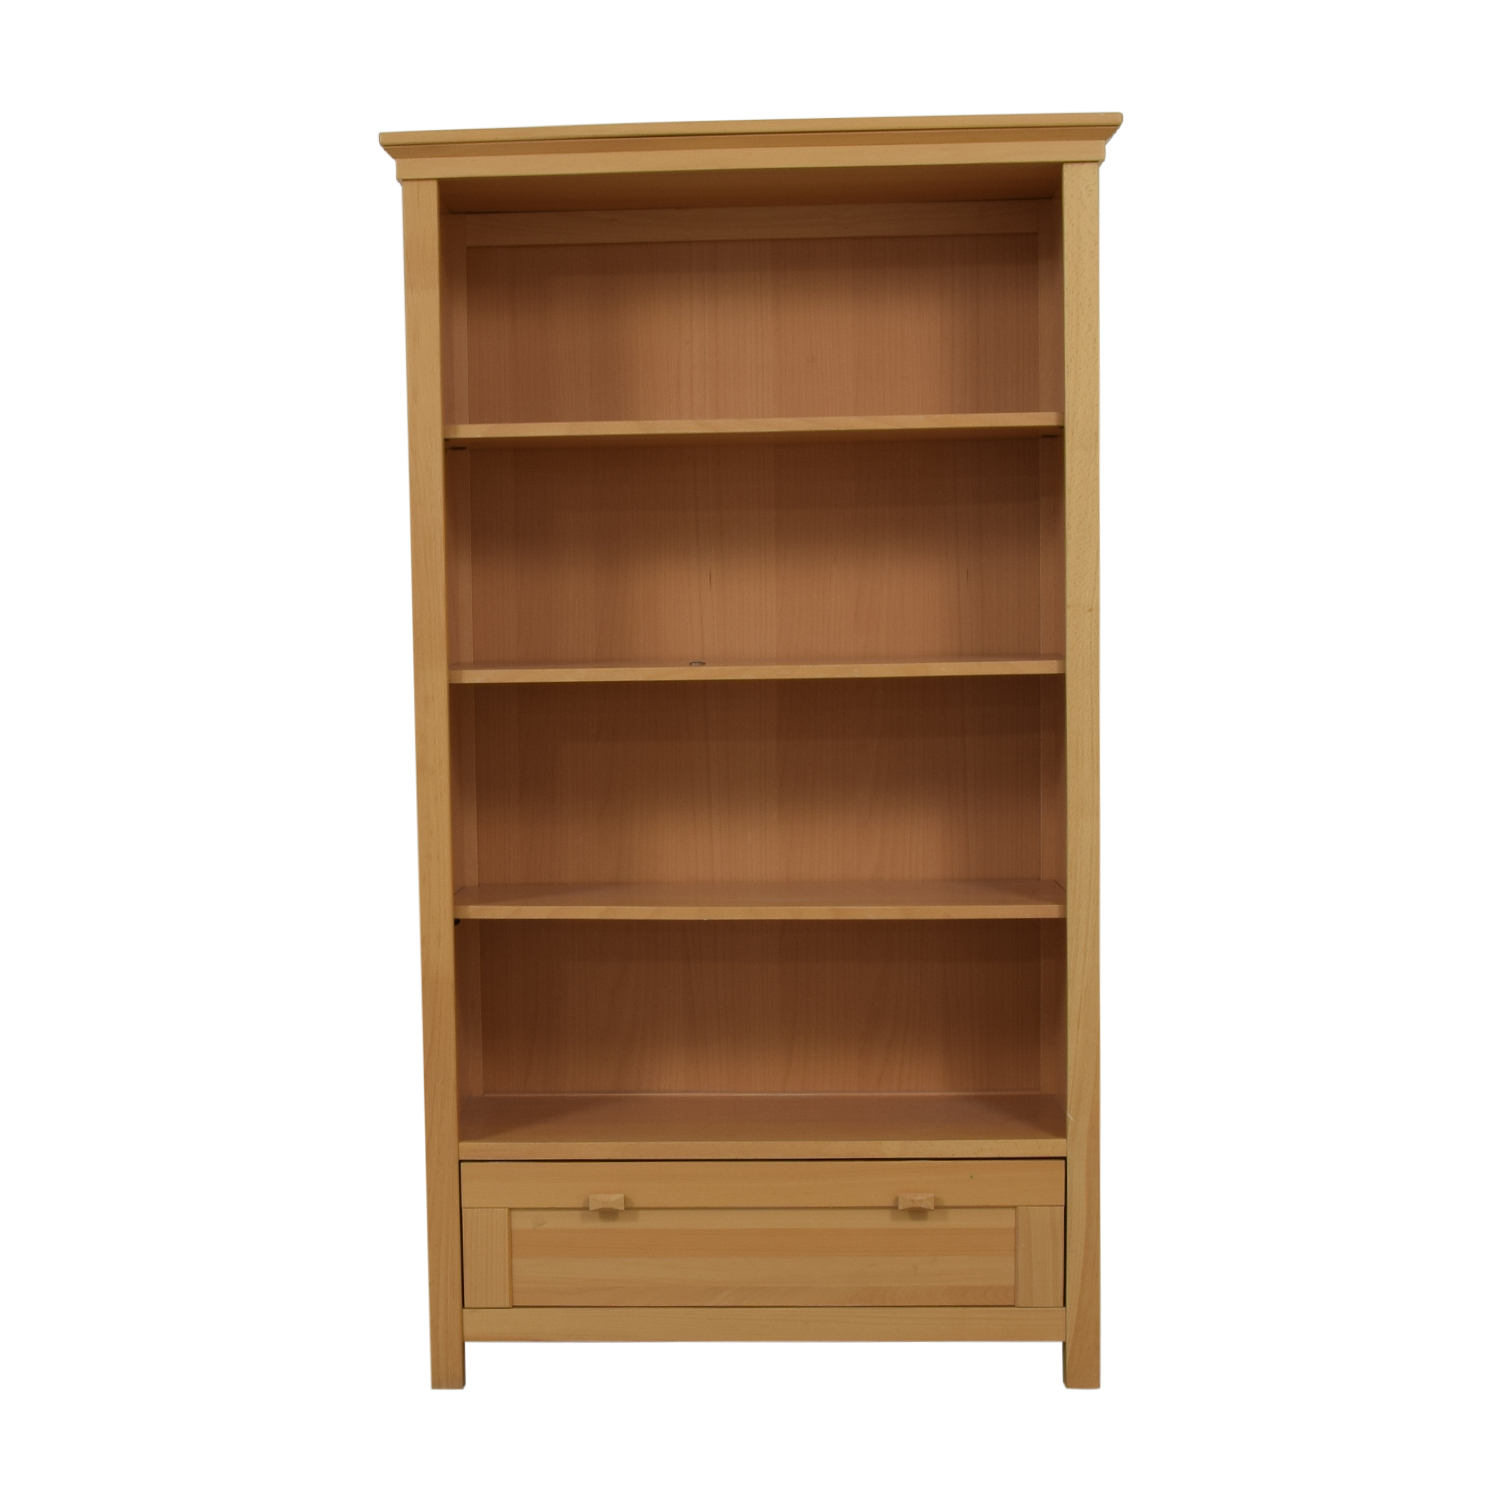 Romina Romina Single Drawer Wood Bookcase nyc